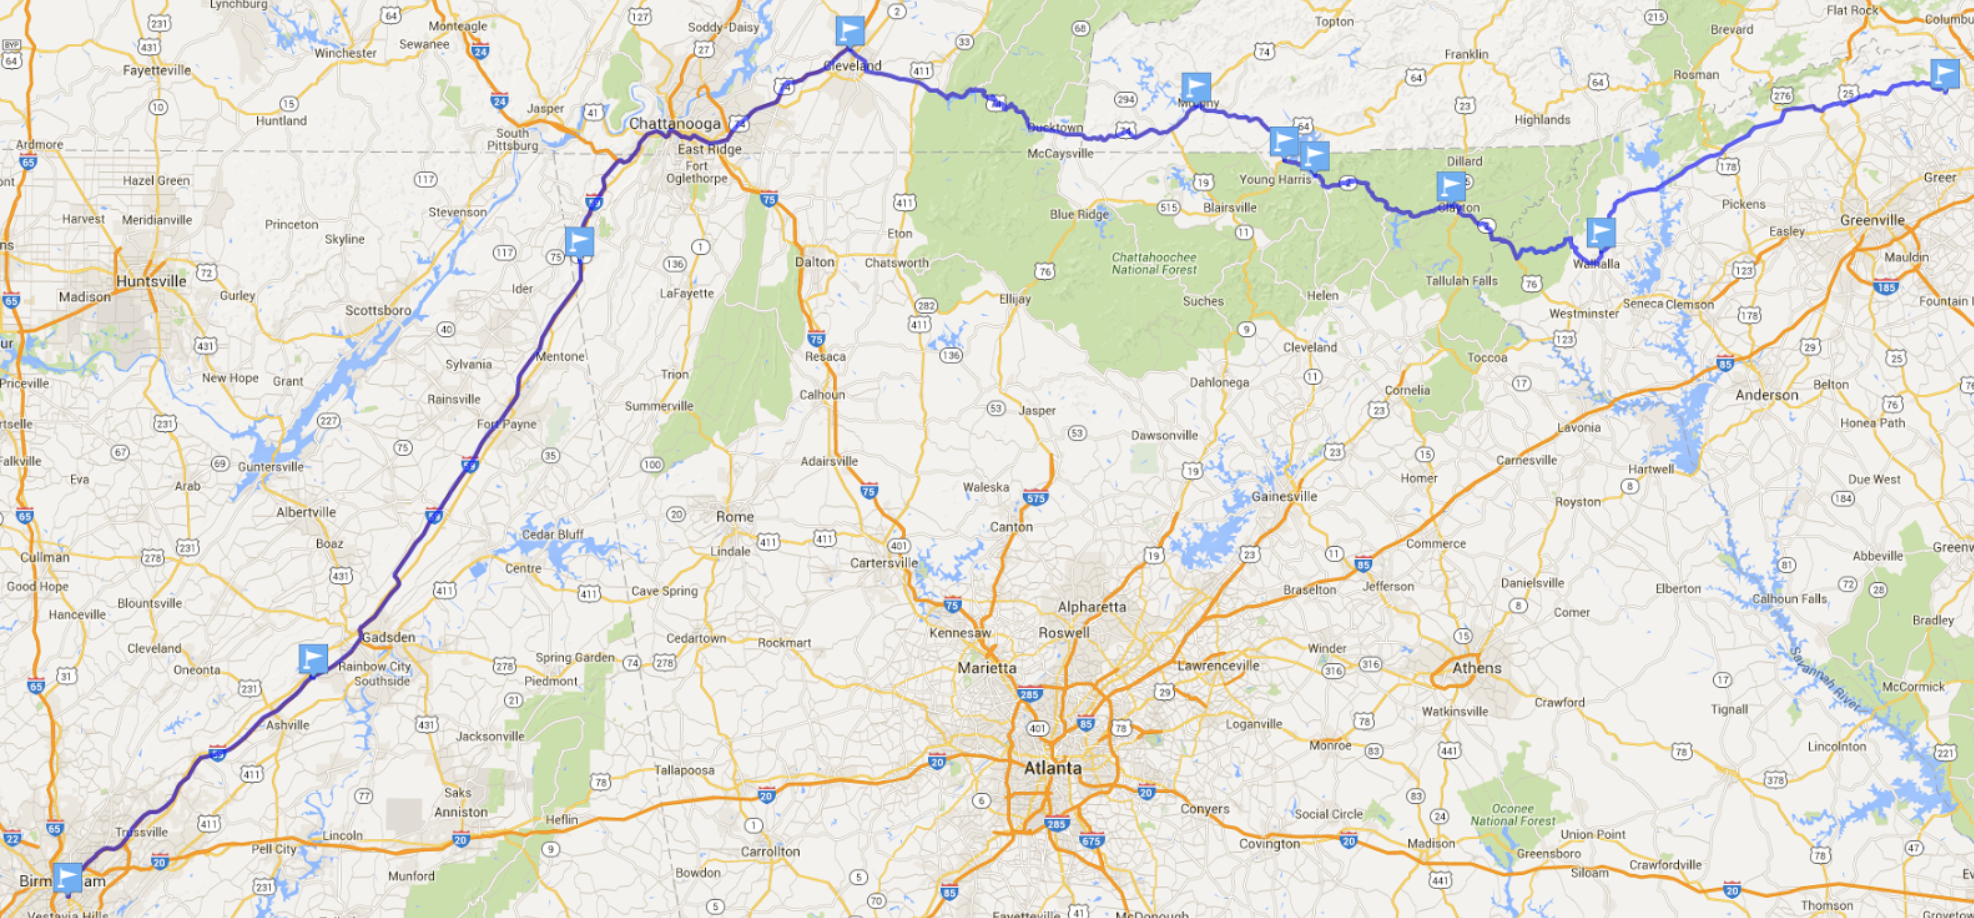 Nice route from Rico's place to Birmingham, AL